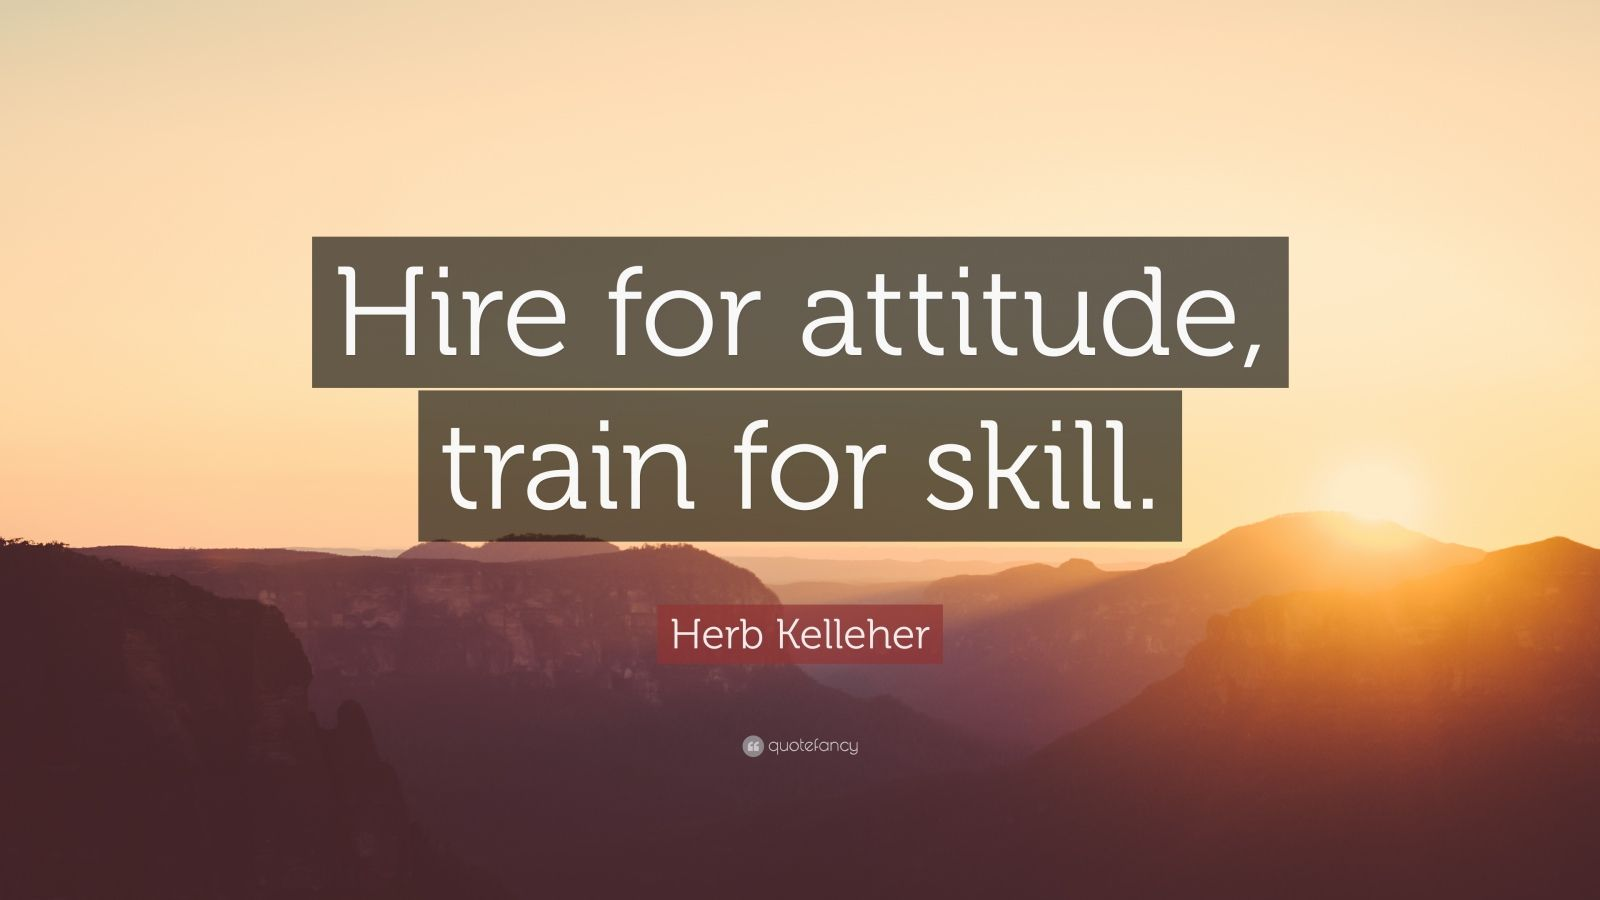 Albert Einstein Wallpaper Quotes Herb Kelleher Quote Hire For Attitude Train For Skill